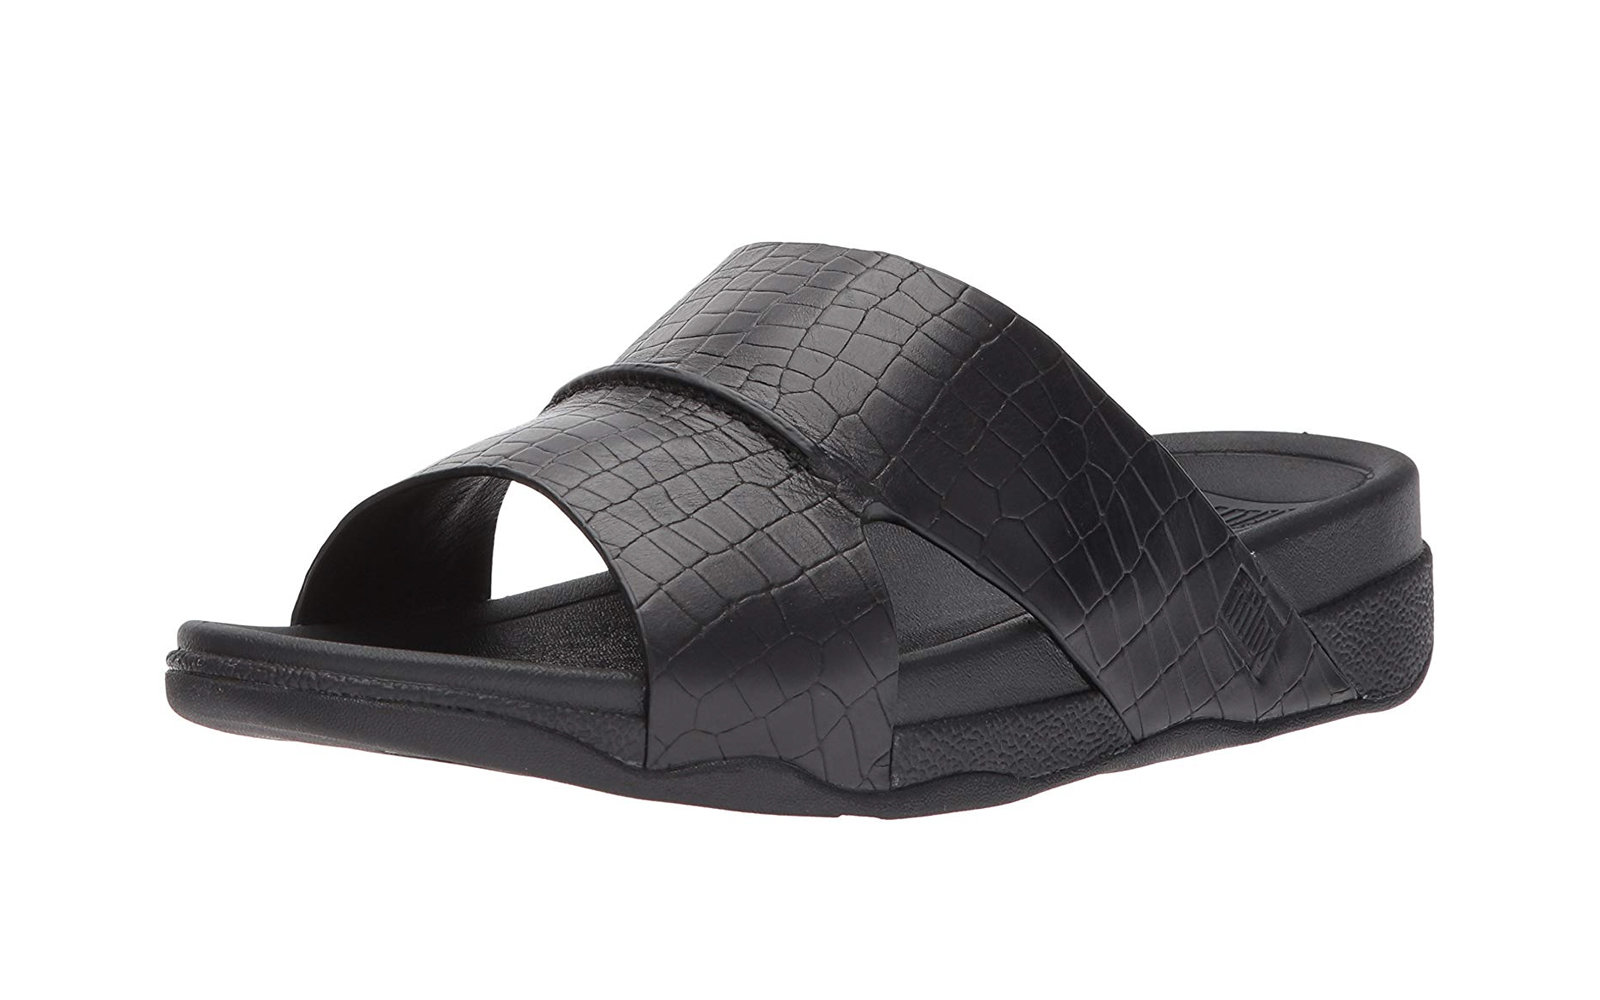 8eee1fd5641 FitFlop Men s Bando Leather Croc Slide Sandal